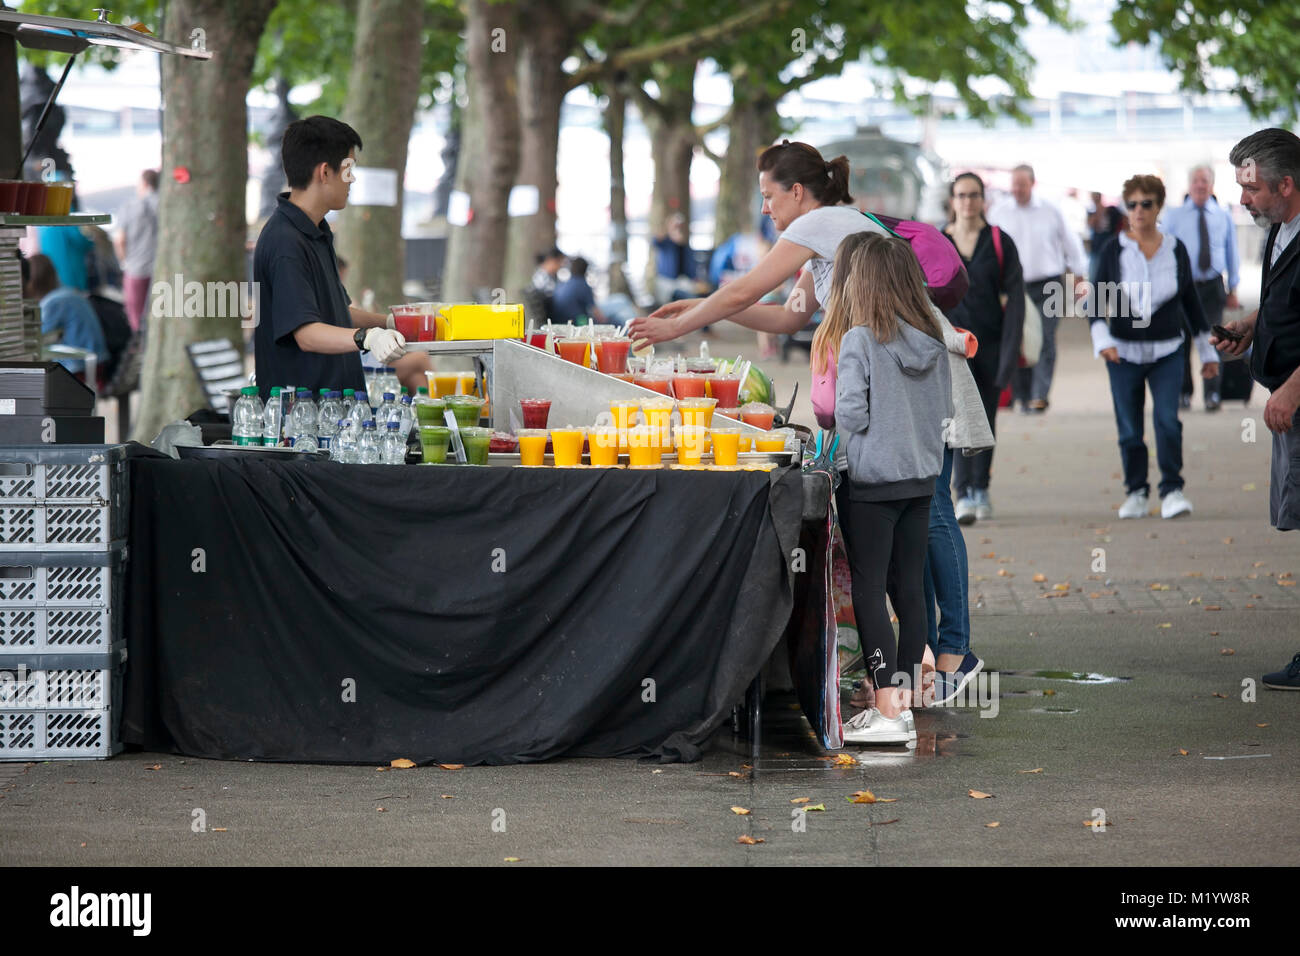 LONDON, ENGLAND - AUGUST 22, 2017 The street seller sells cocktails at South bank - Stock Image